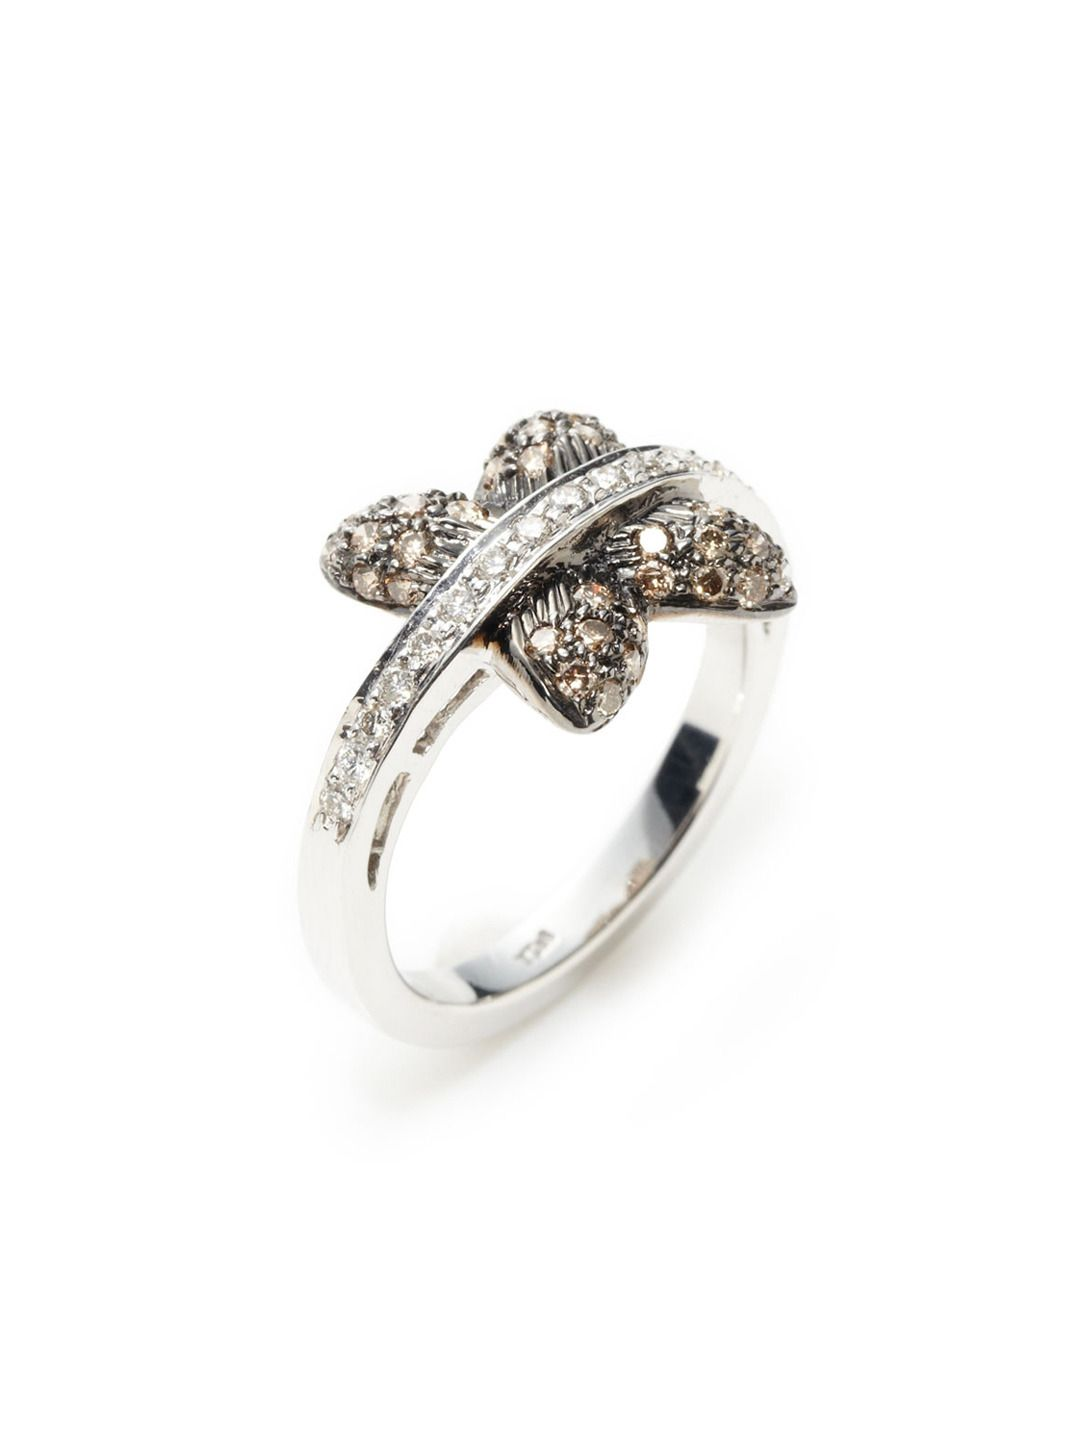 kay levian diamonds band beautiful tw diamond manworksdesign bands com chocolate wedding ct